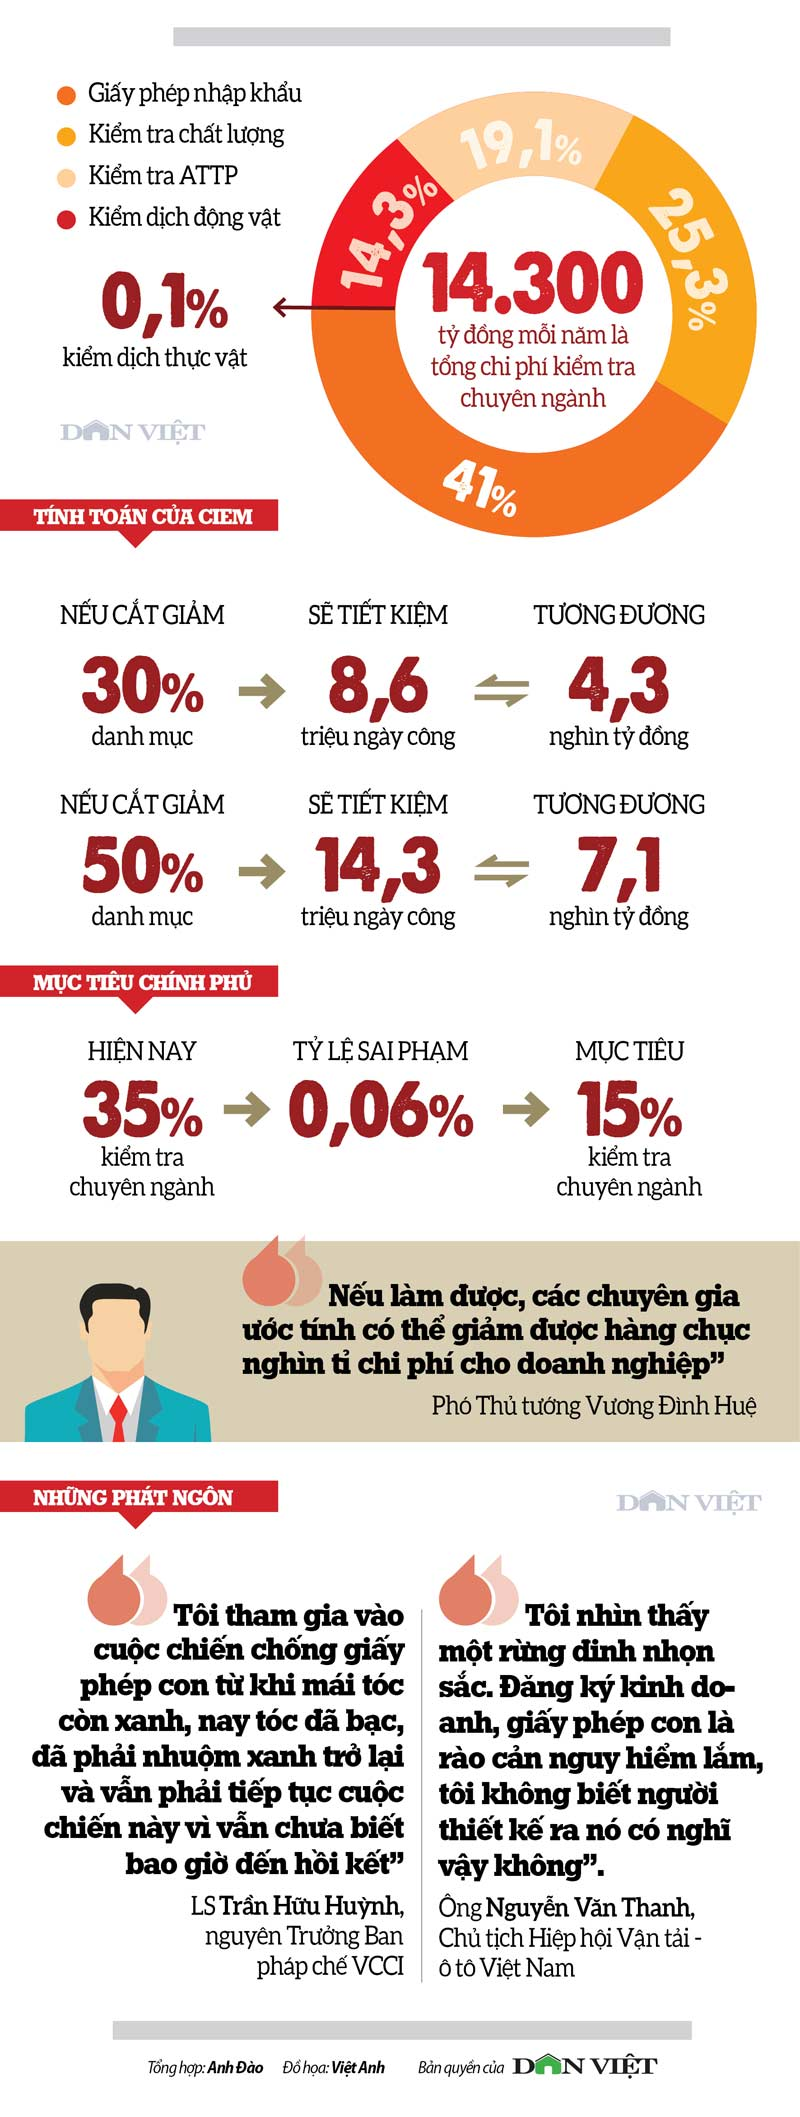 infographic: 28,6 trieu ngay cong, 14,3 nghin ty dong cho...thu tuc hinh anh 3